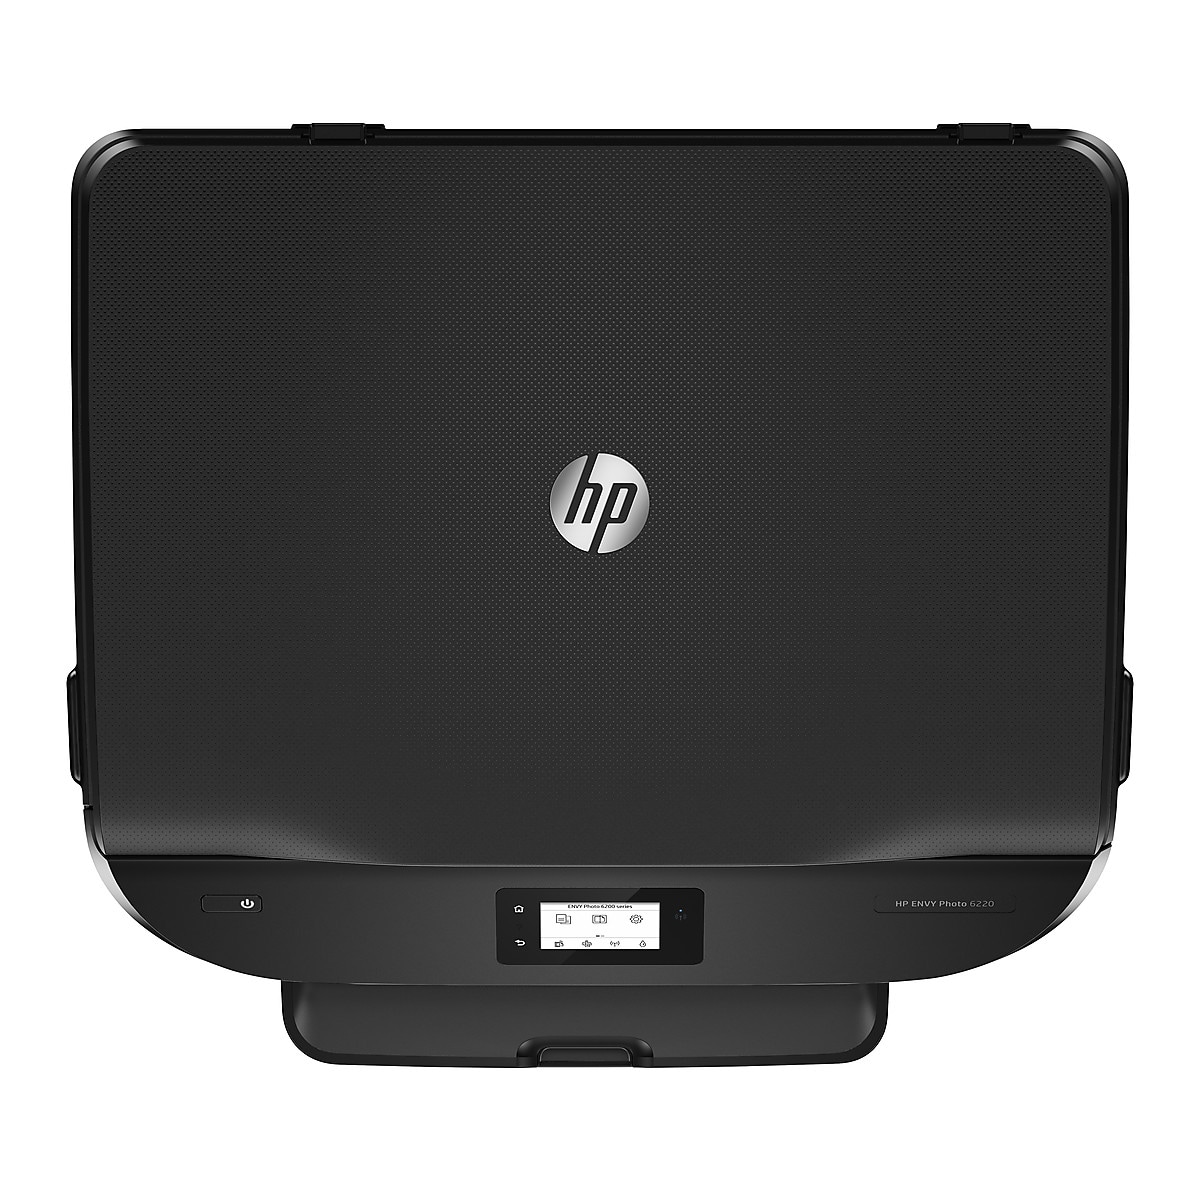 HP Envy Photo 6220 AiO, skrivare